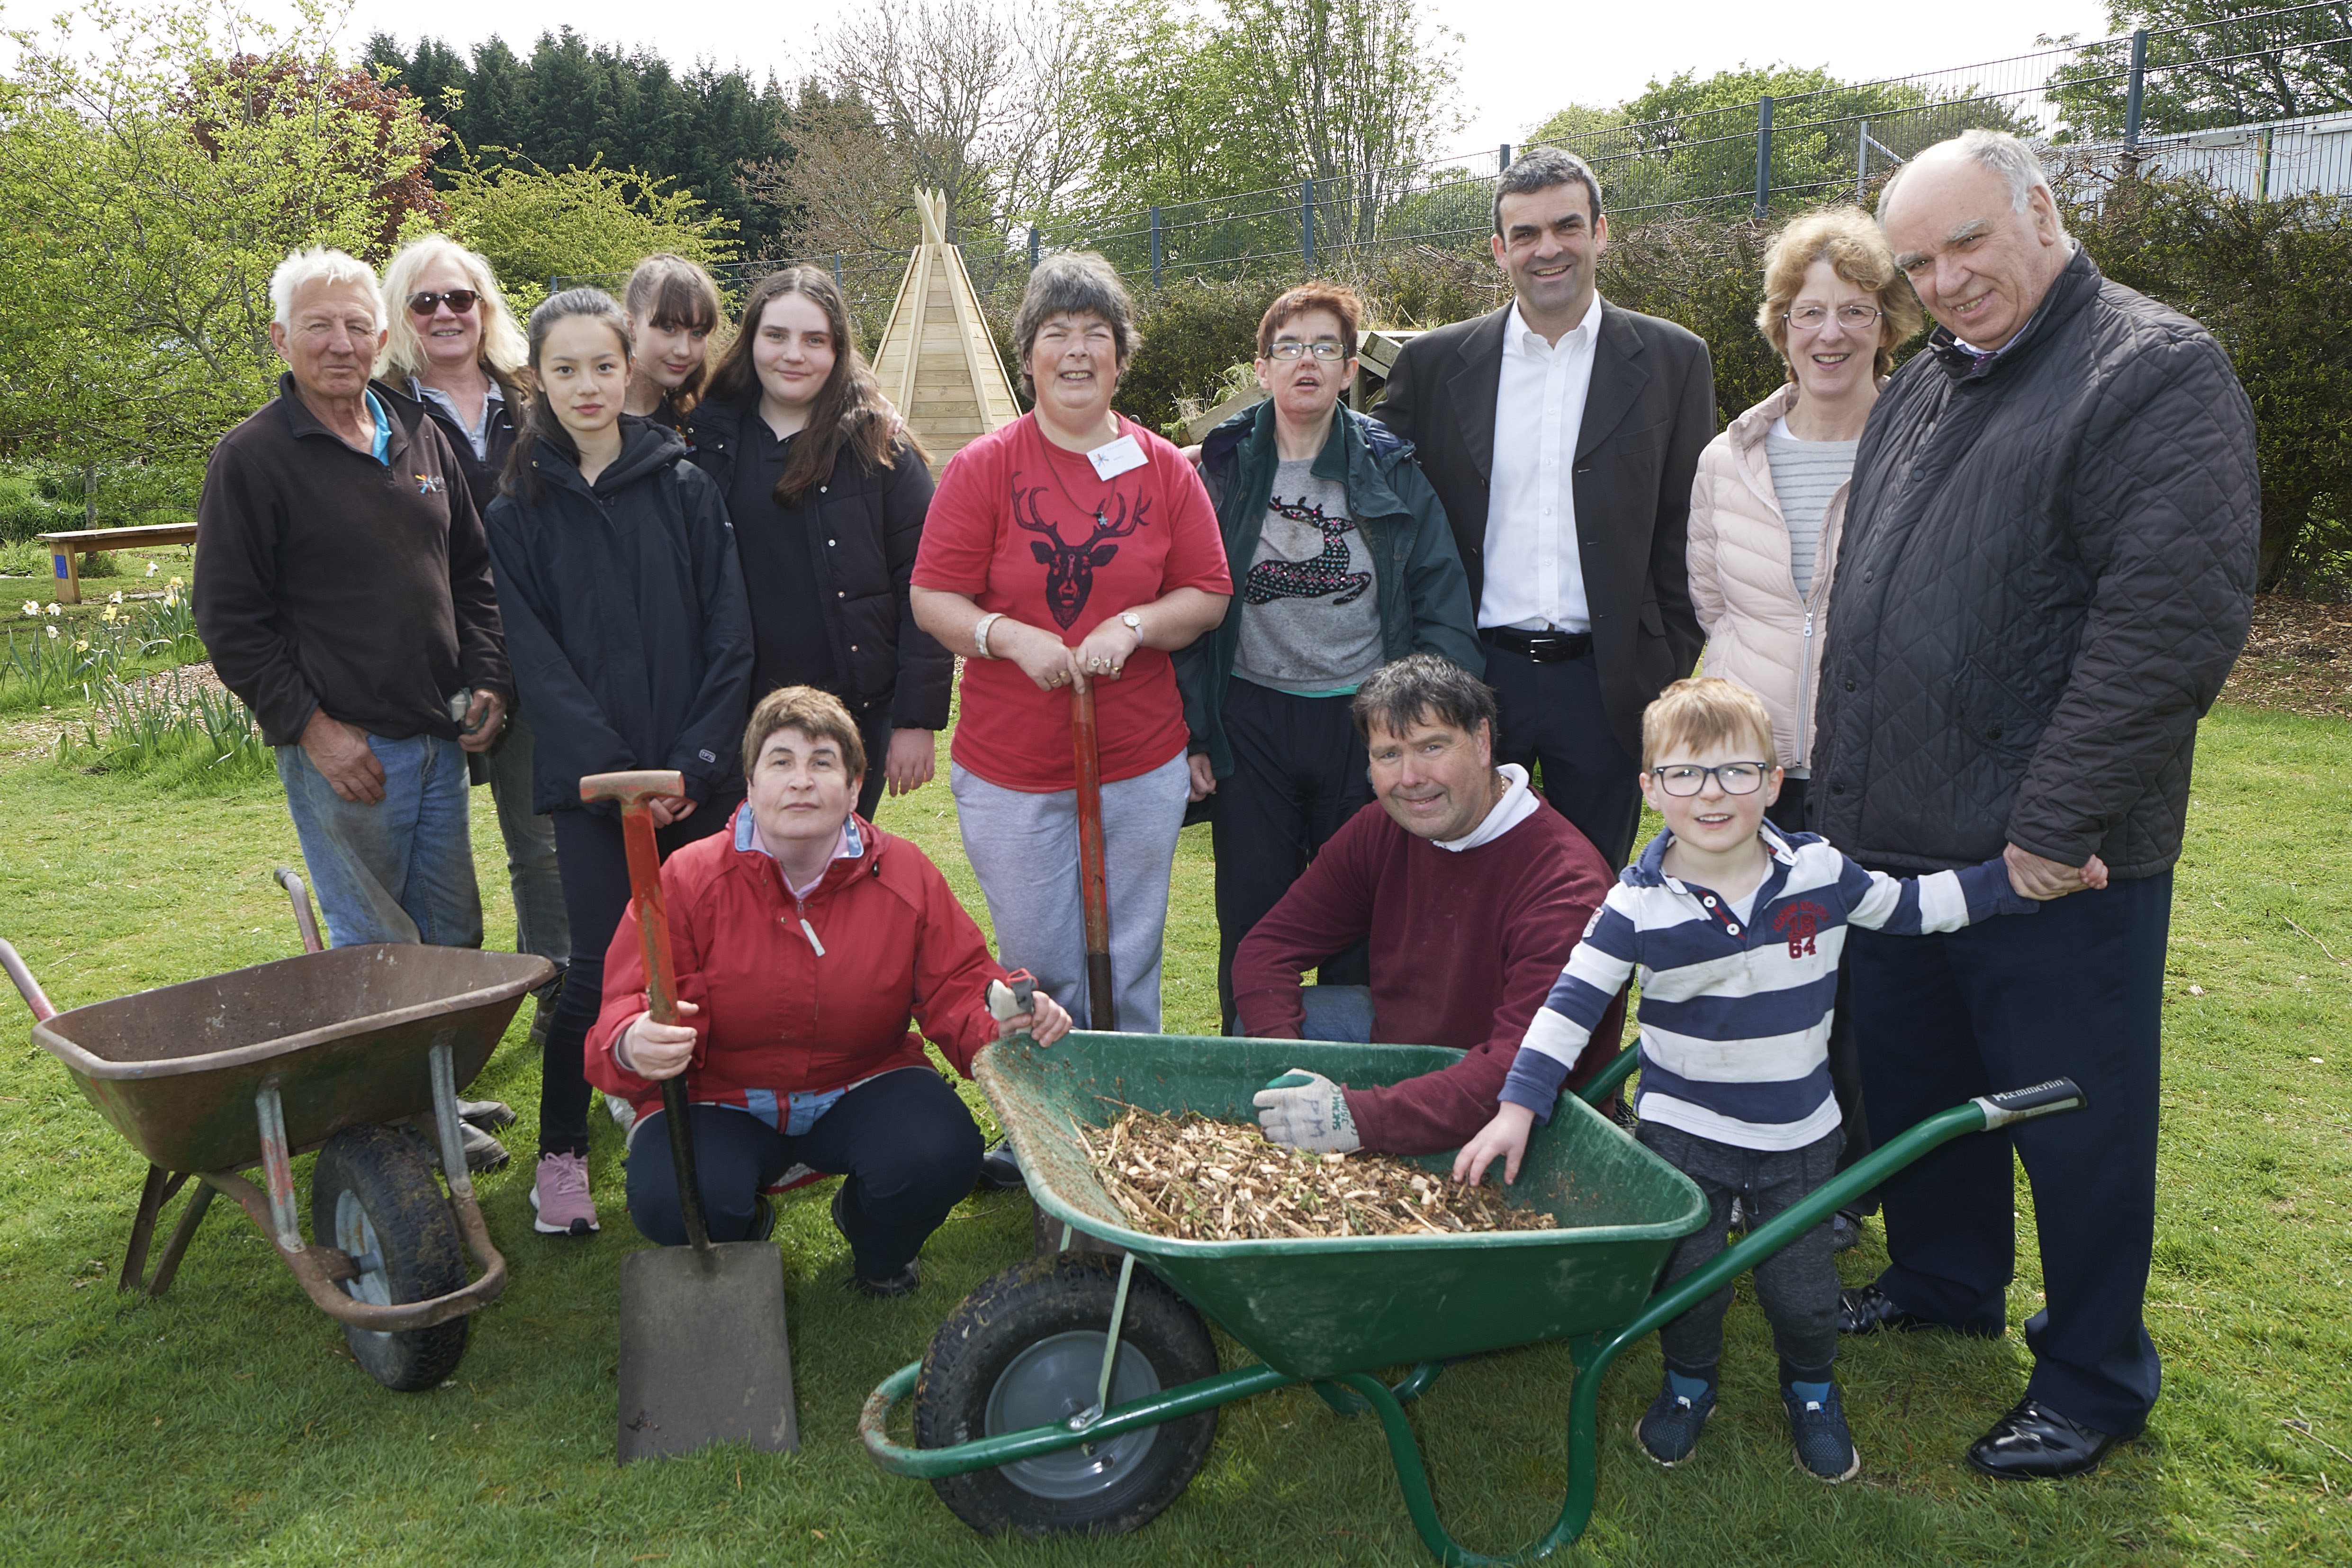 Members of the Grow Project, who have received a welcomed boost of £20,000 to fund operations for the upcoming year